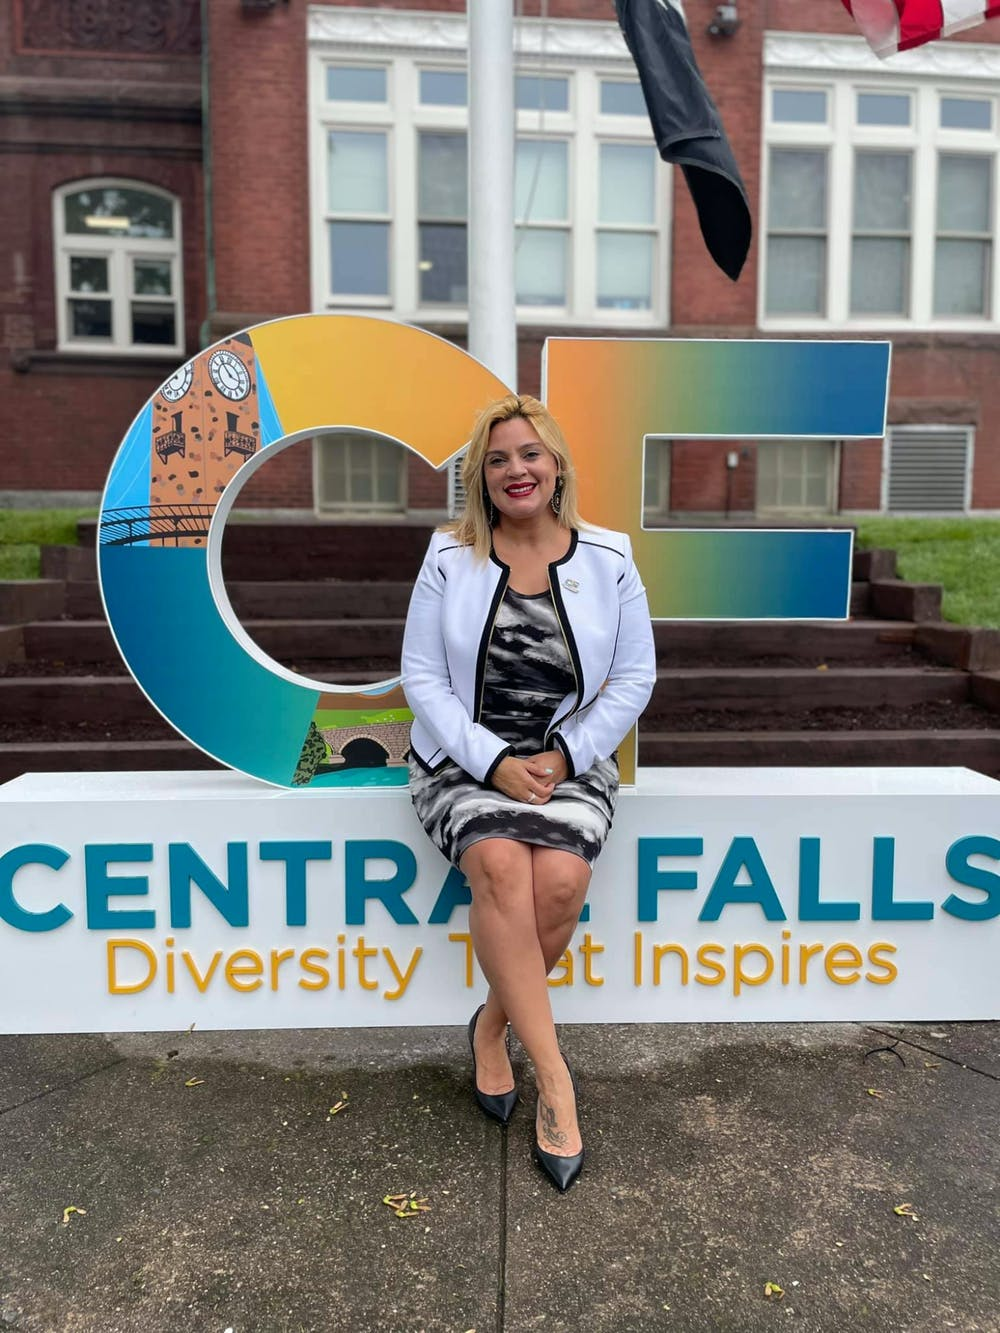 <p>Mayor Maria Rivera of Central Falls became the first Latina mayor in state history and the first female mayor in city history in January 2021.</p>